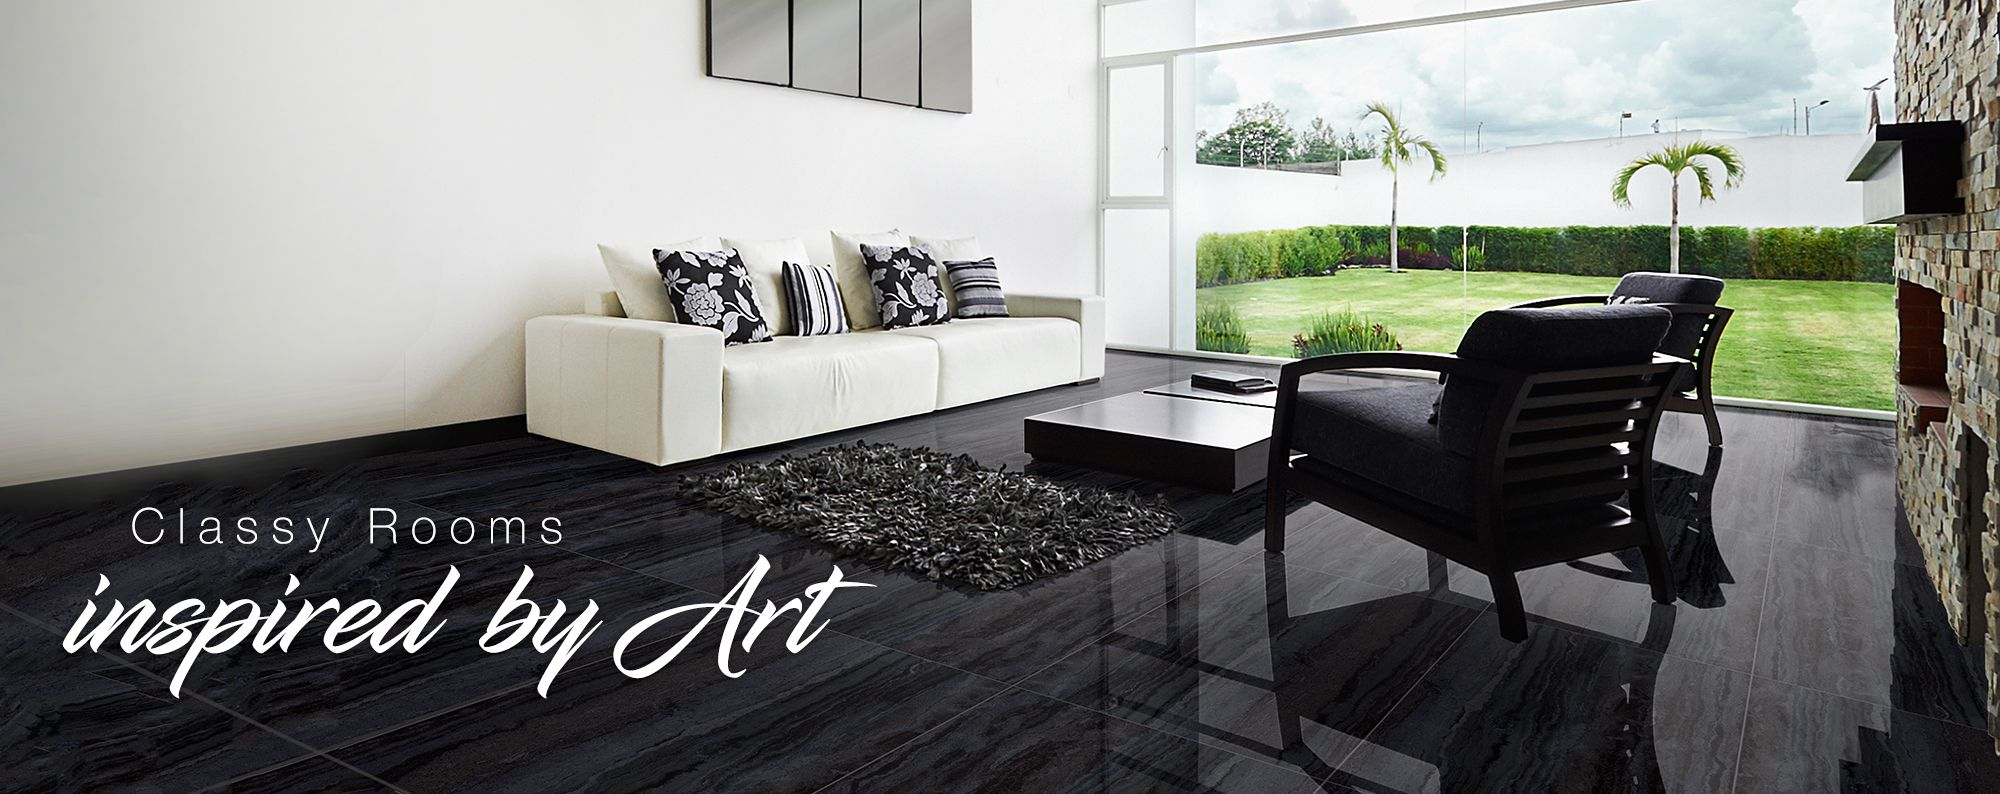 Floor Tiles For Living Room